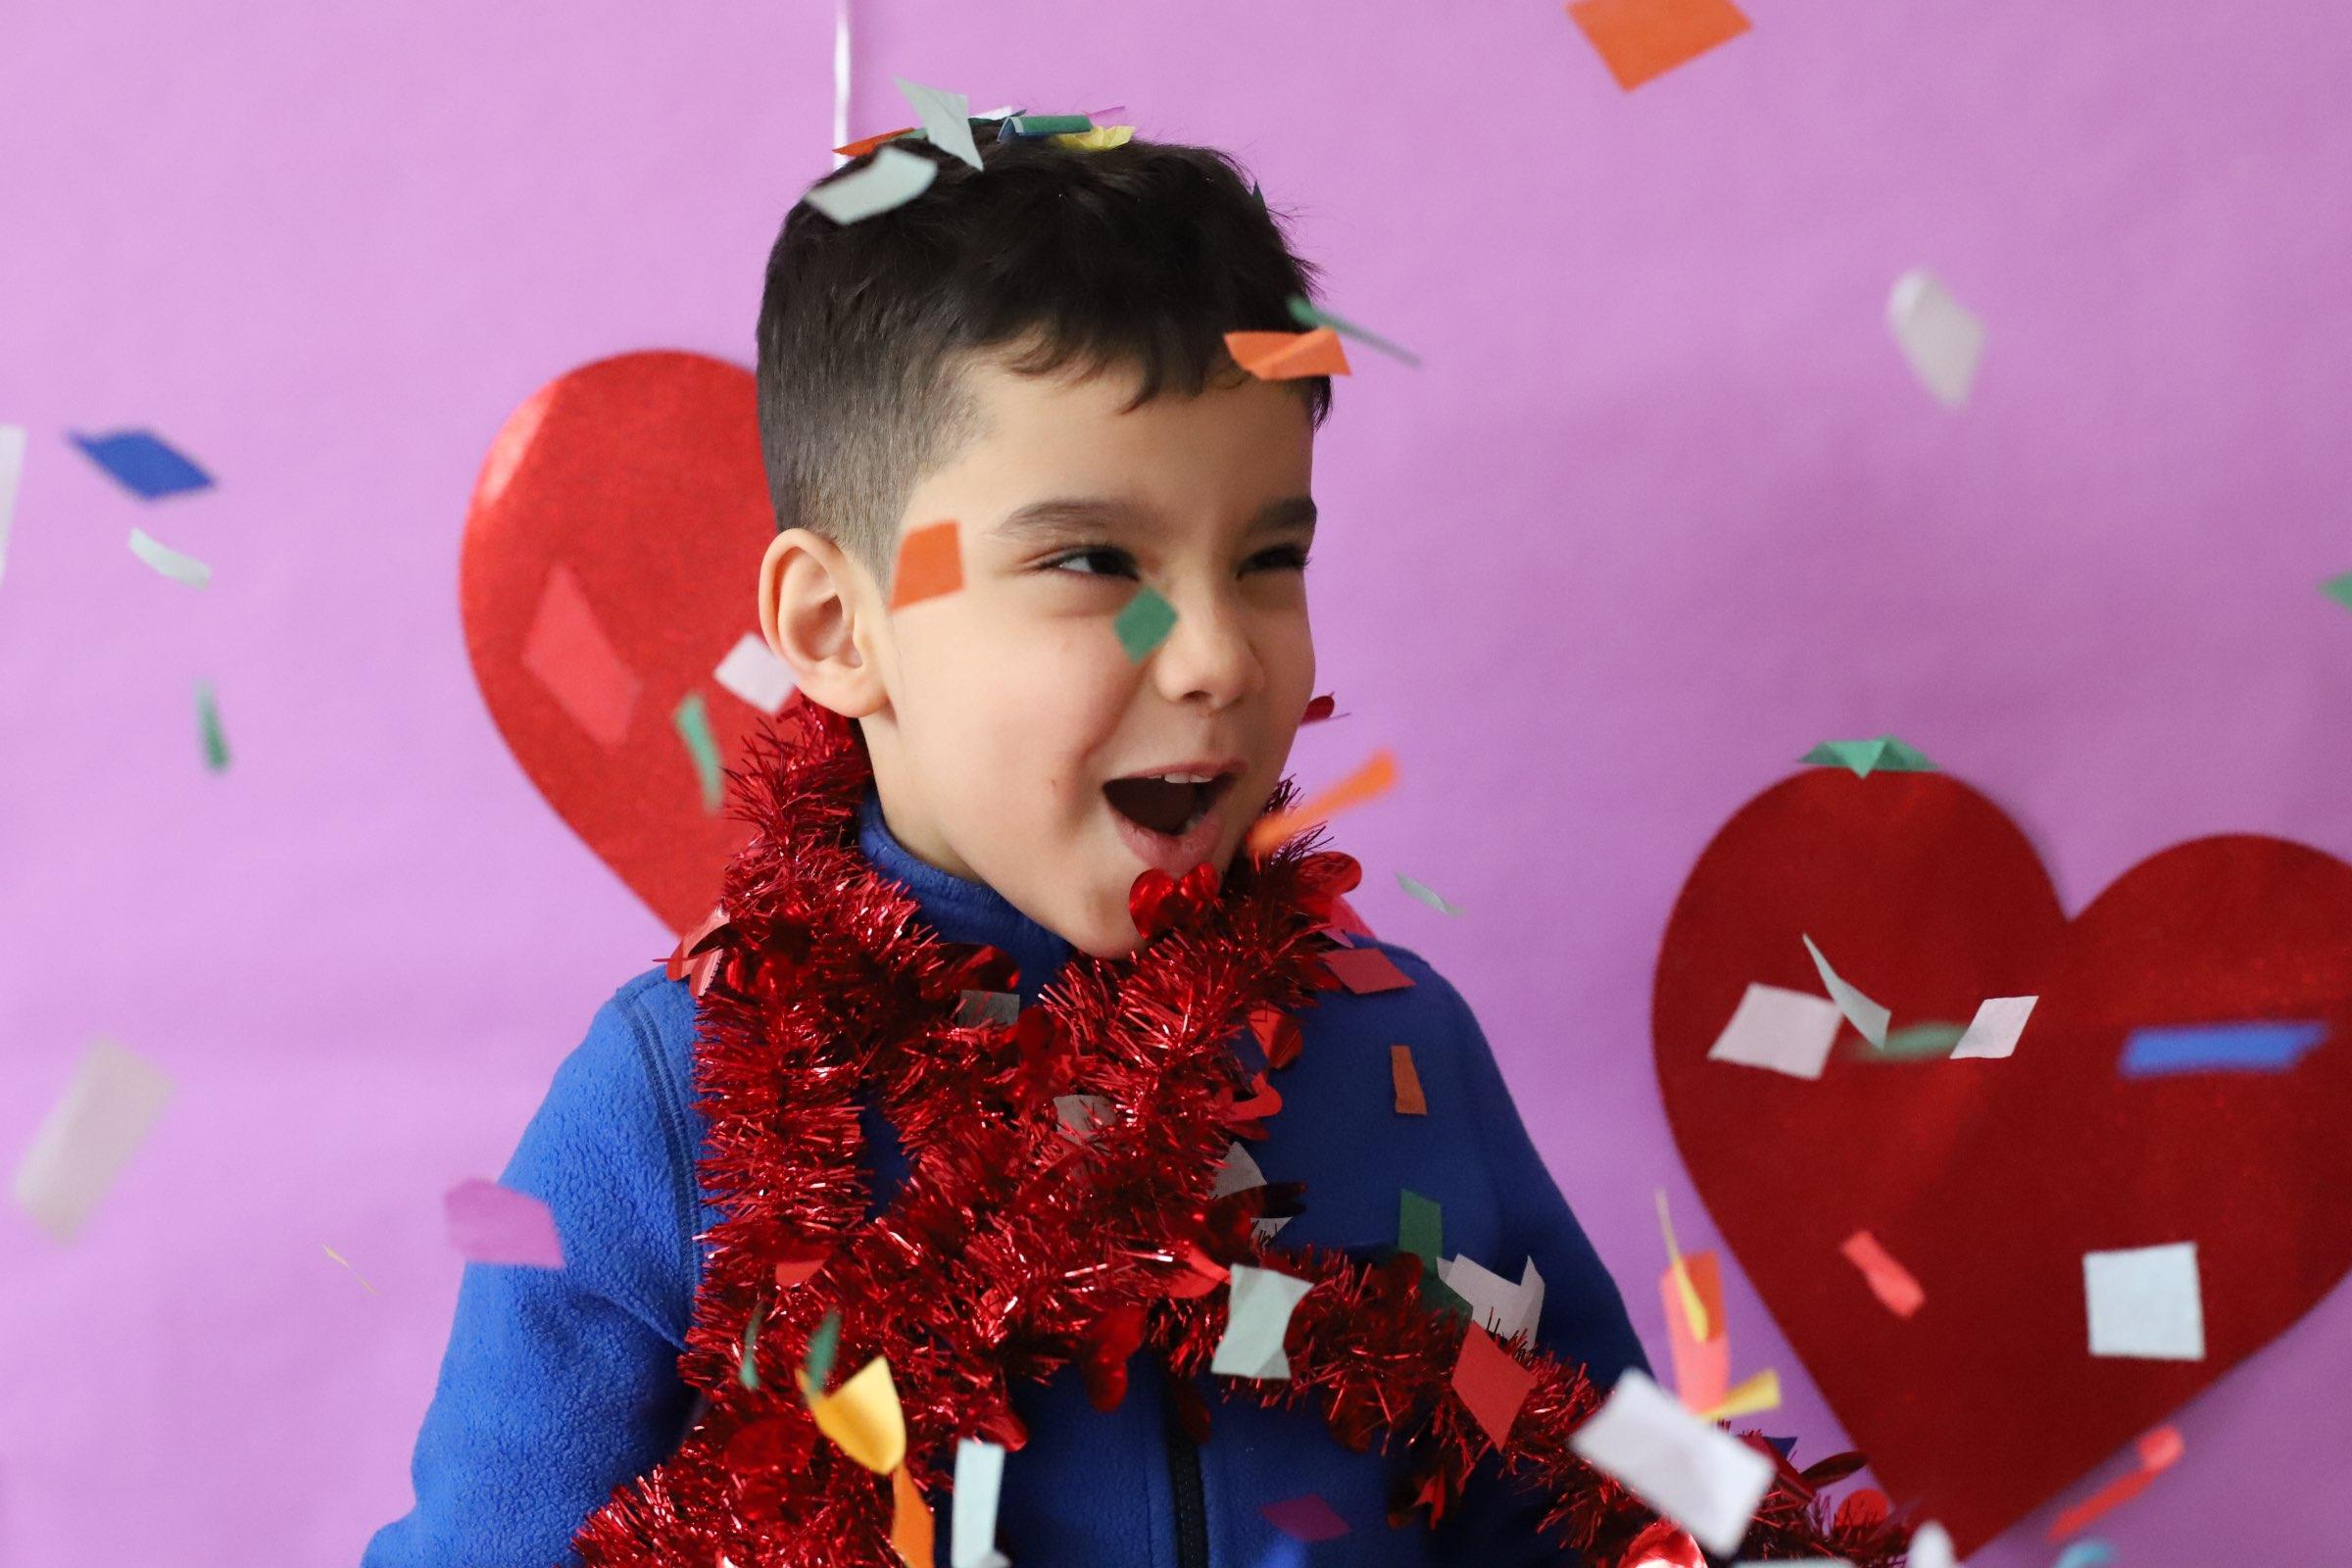 boy surrounded by hearts